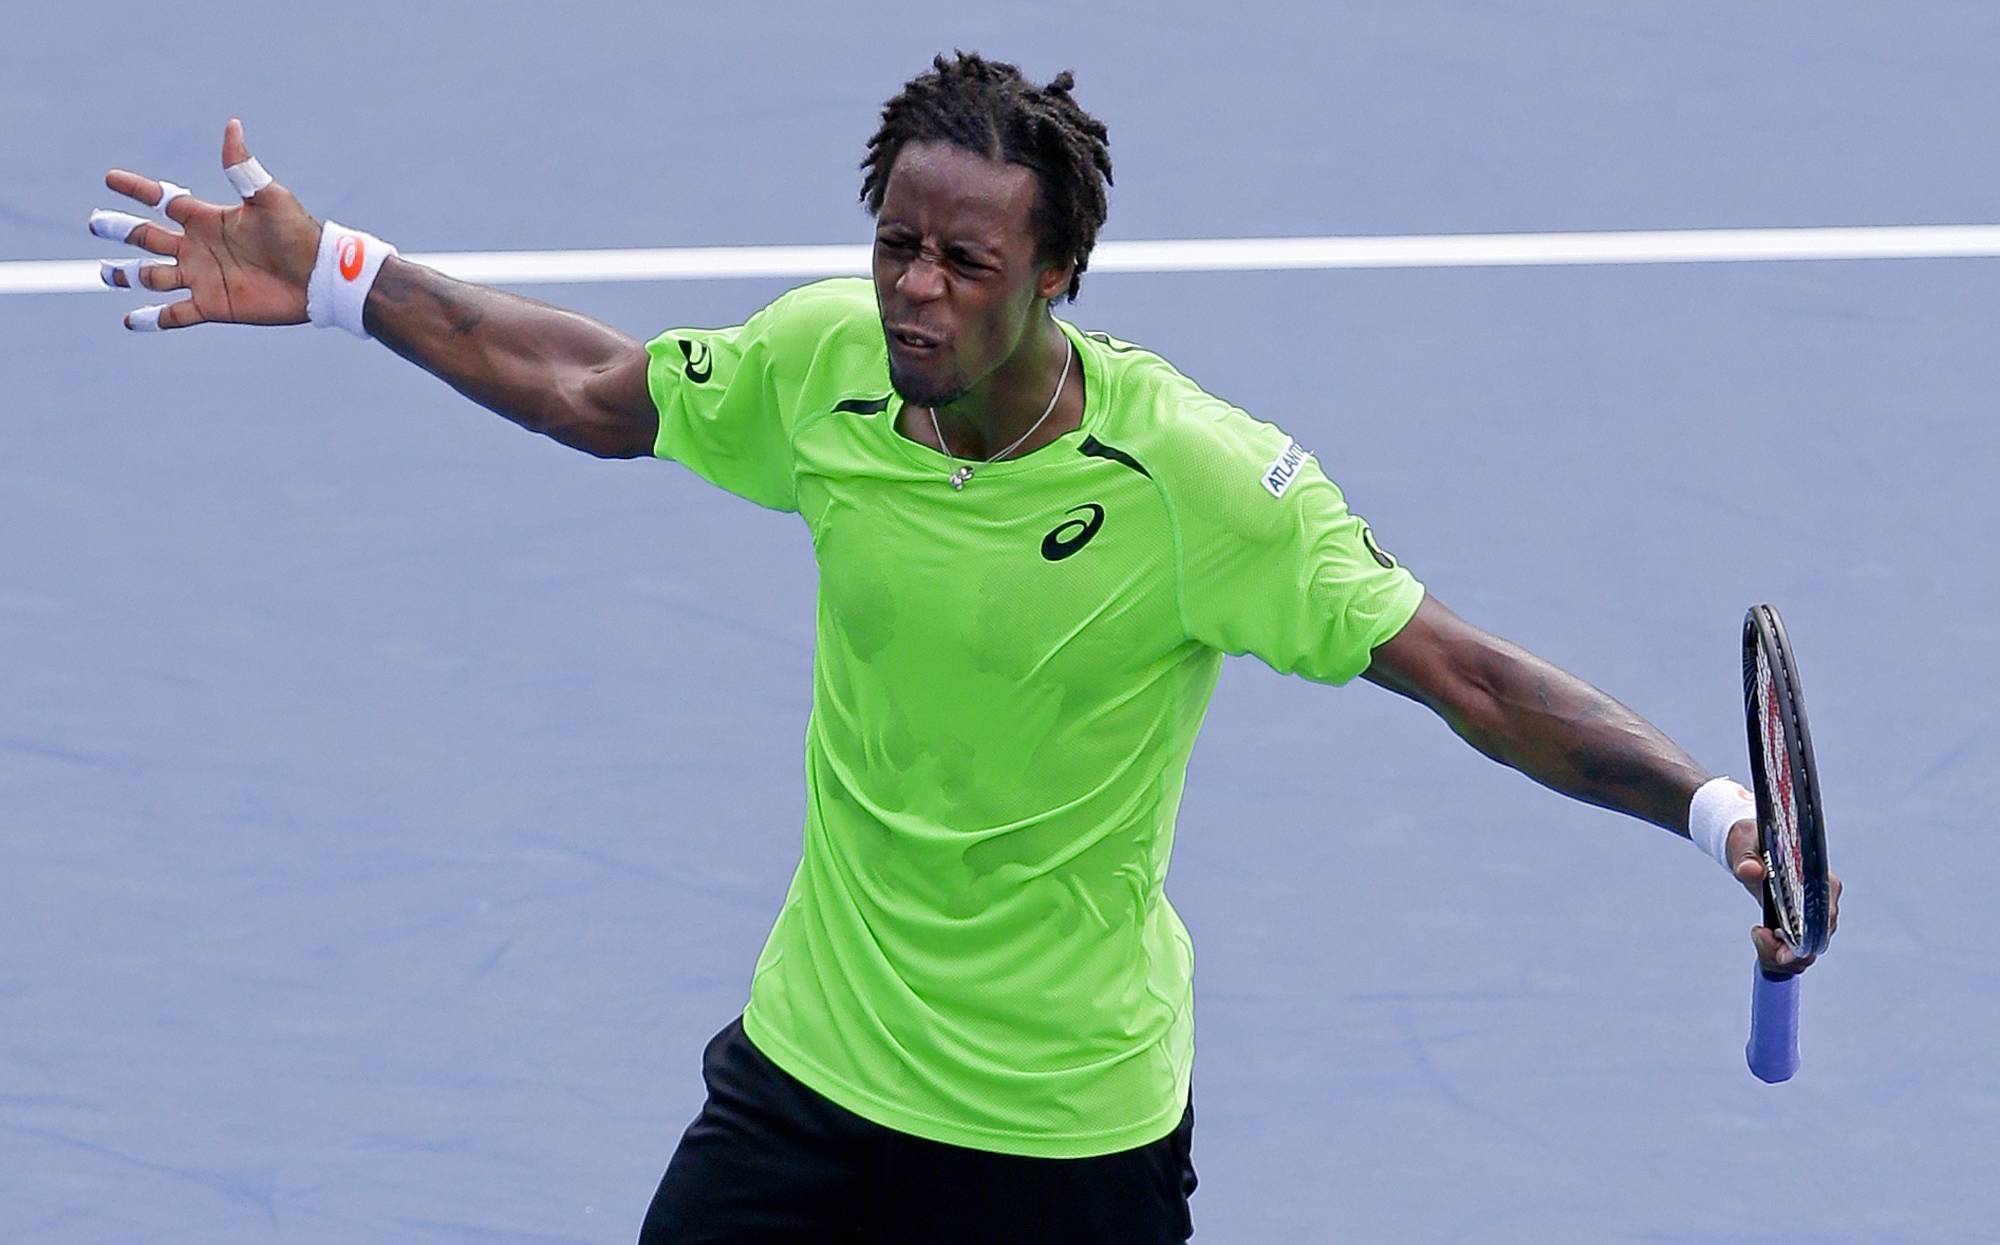 Gael Monfils, of France, reacts after defeating Grigor Dimitrov, of Bulgaria, during the fourth round of the 2014 U.S. Open tennis tournament, Tuesday, Sept. 2, 2014, in New York.